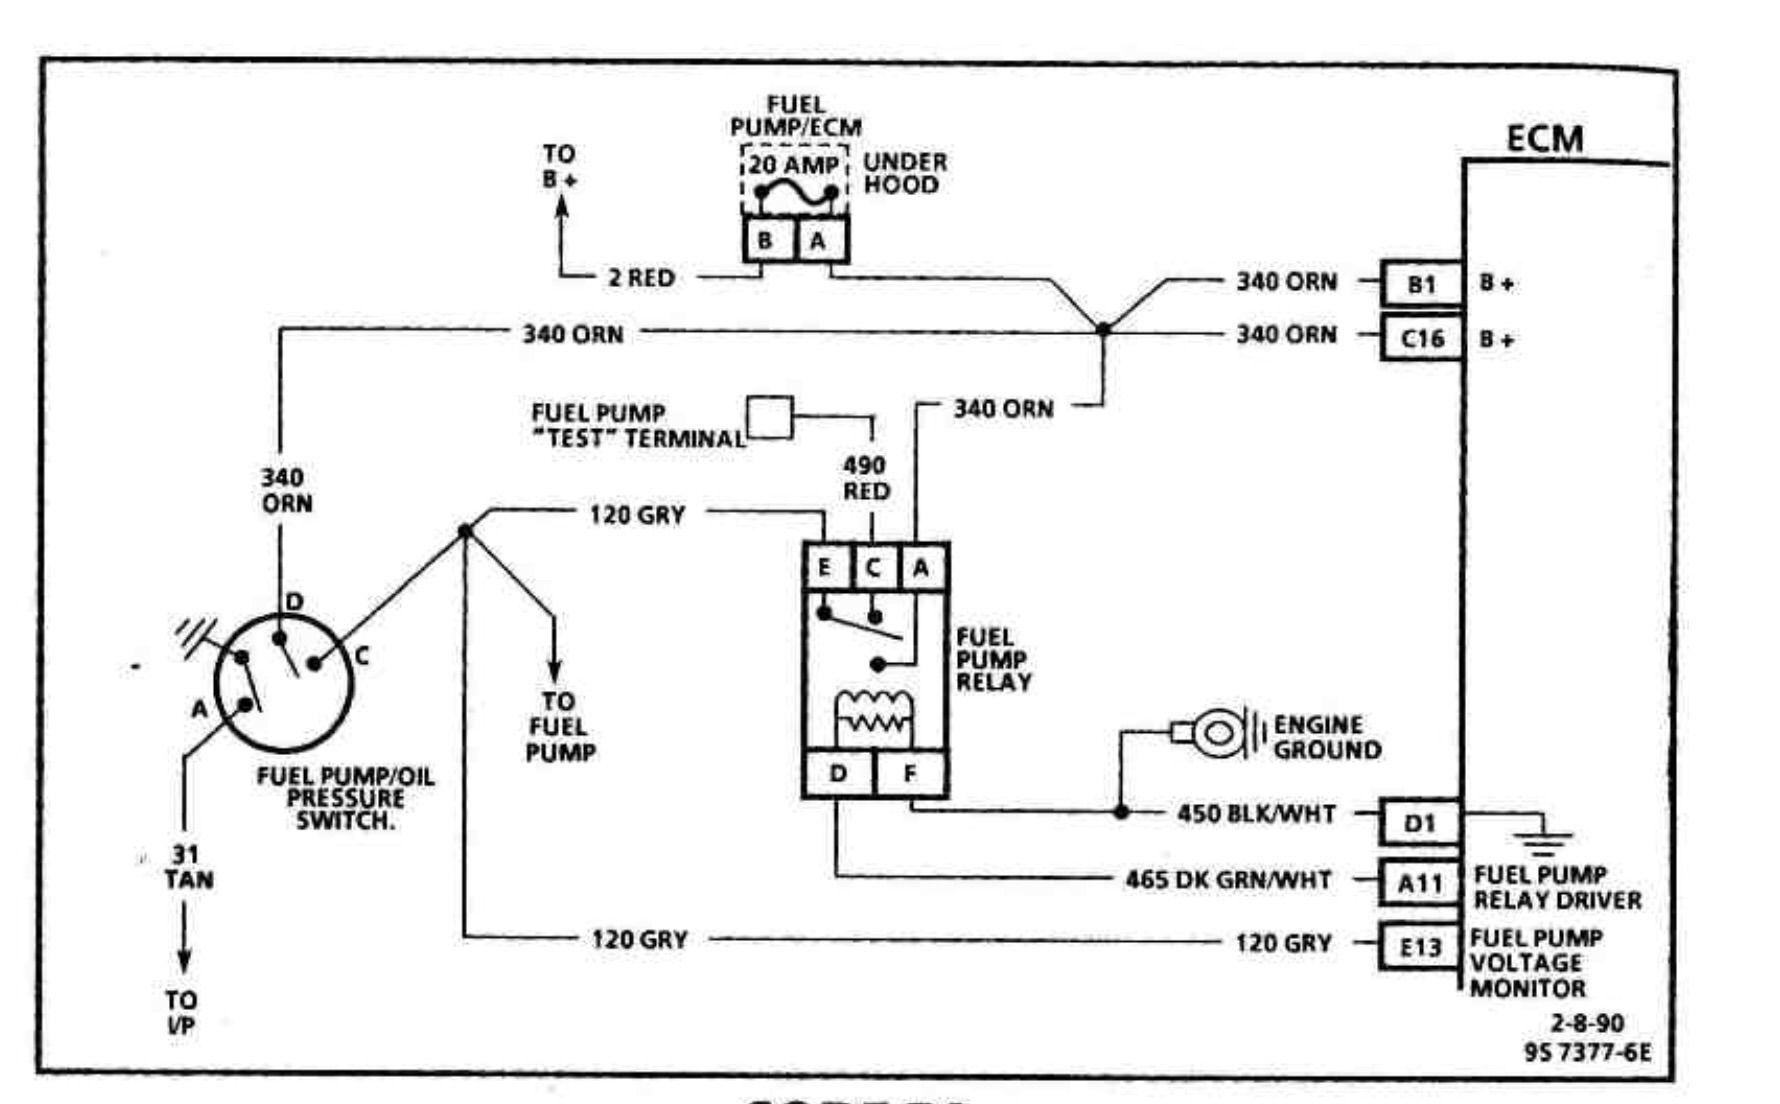 DIAGRAM] Viper Car Alarm Wiring Diagram 92 Camaro FULL Version HD Quality 92  Camaro - FORMATIONRESEAUSOCIAL.NIMESREPORTER.FRDiagram Database